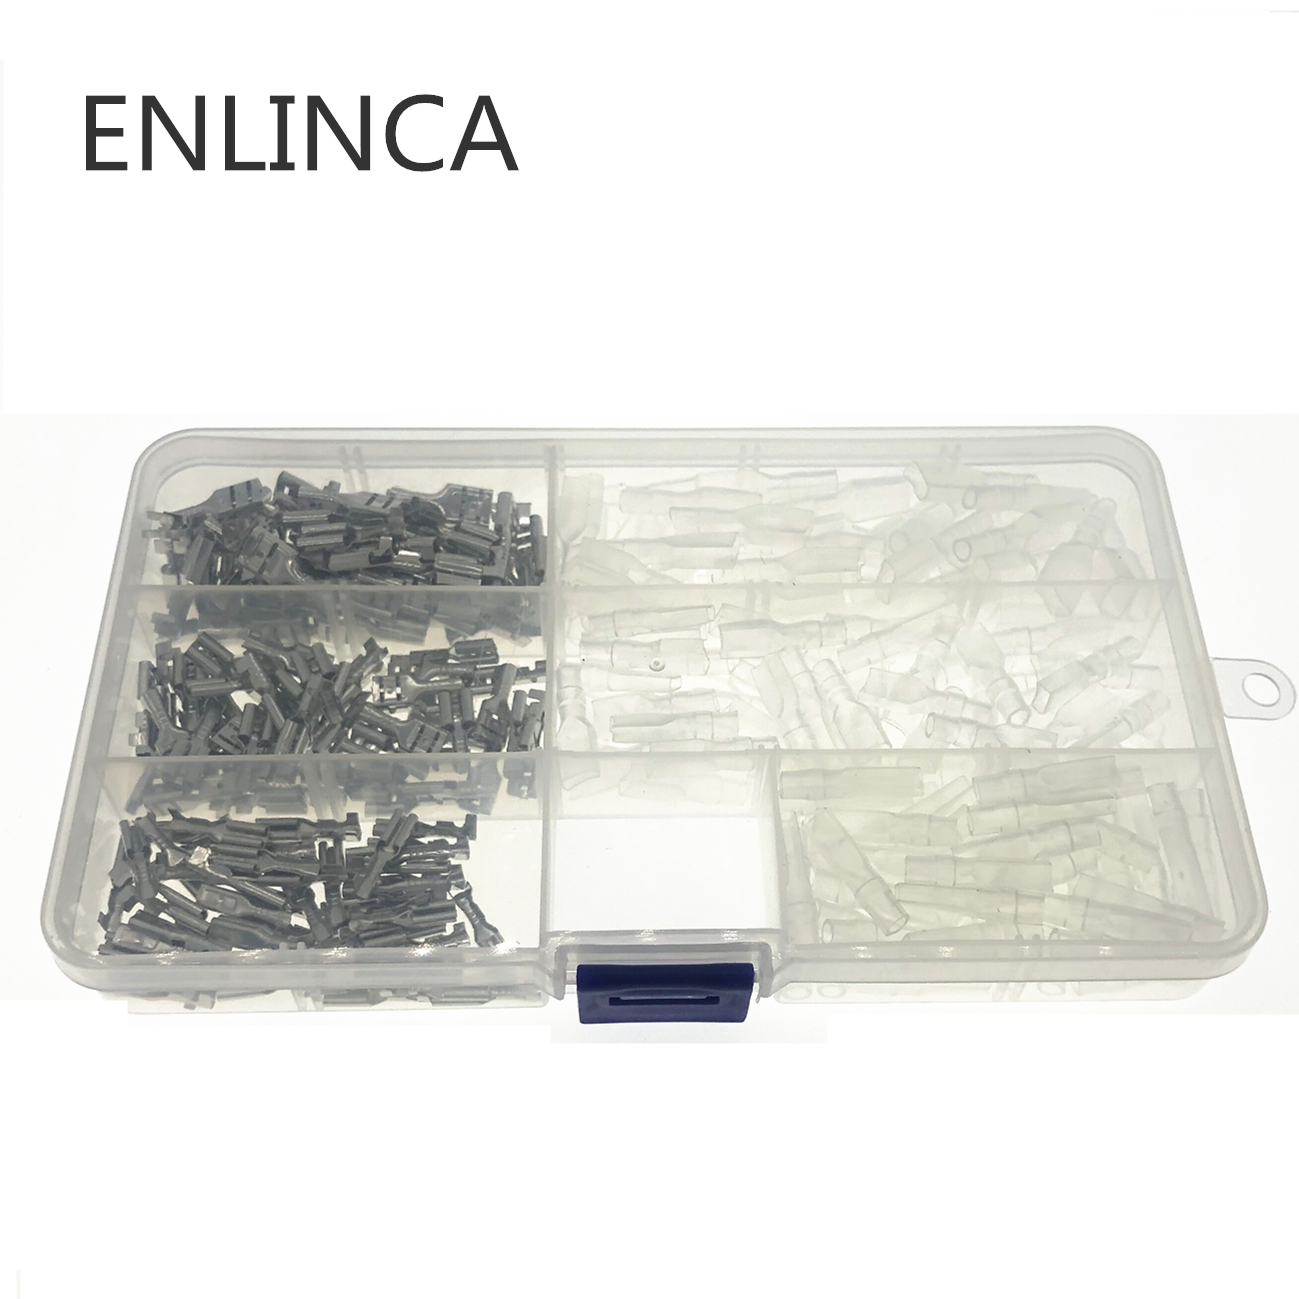 300pcs 2.8/4.8/6.3mm Crimp Terminals Insulated Seal Electrical Wire Connectors Crimp Terminal Connector Assortment Kit